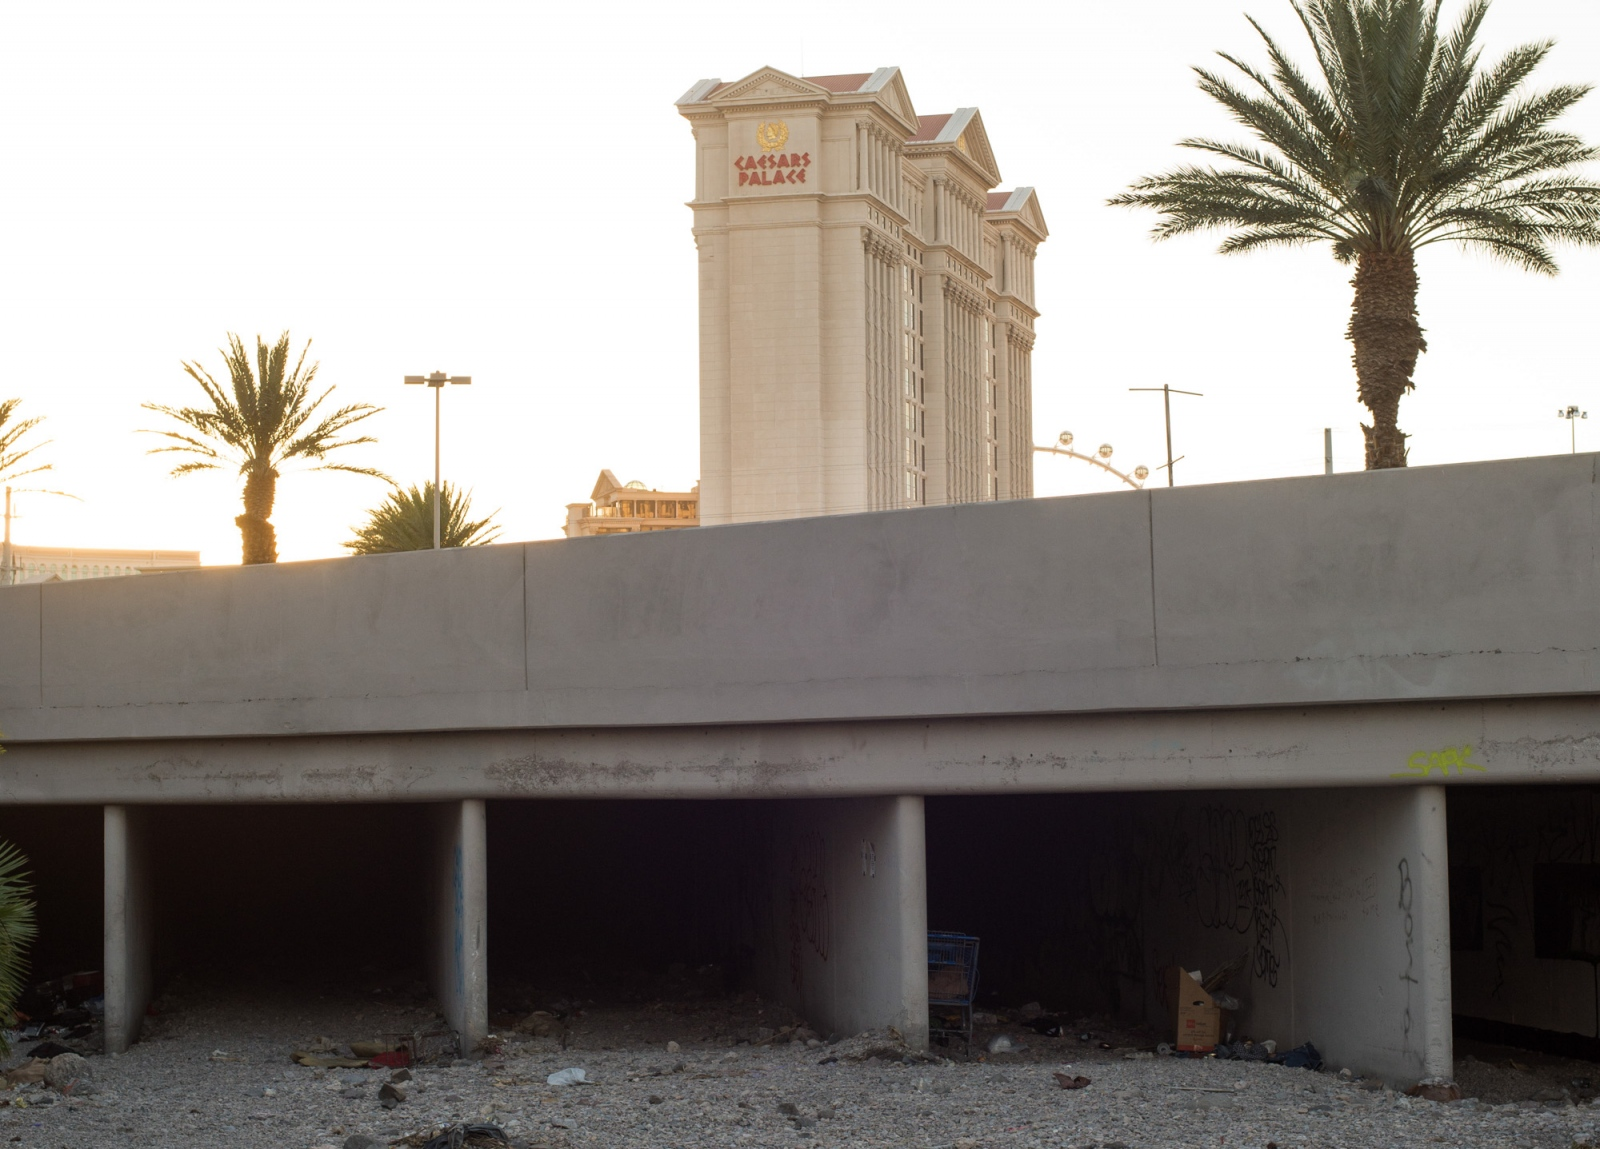 Below Caesars Palace an entrance to the over 200 miles of flood tunnels under Las Vegas, where hundreds of homeless people live off the grid